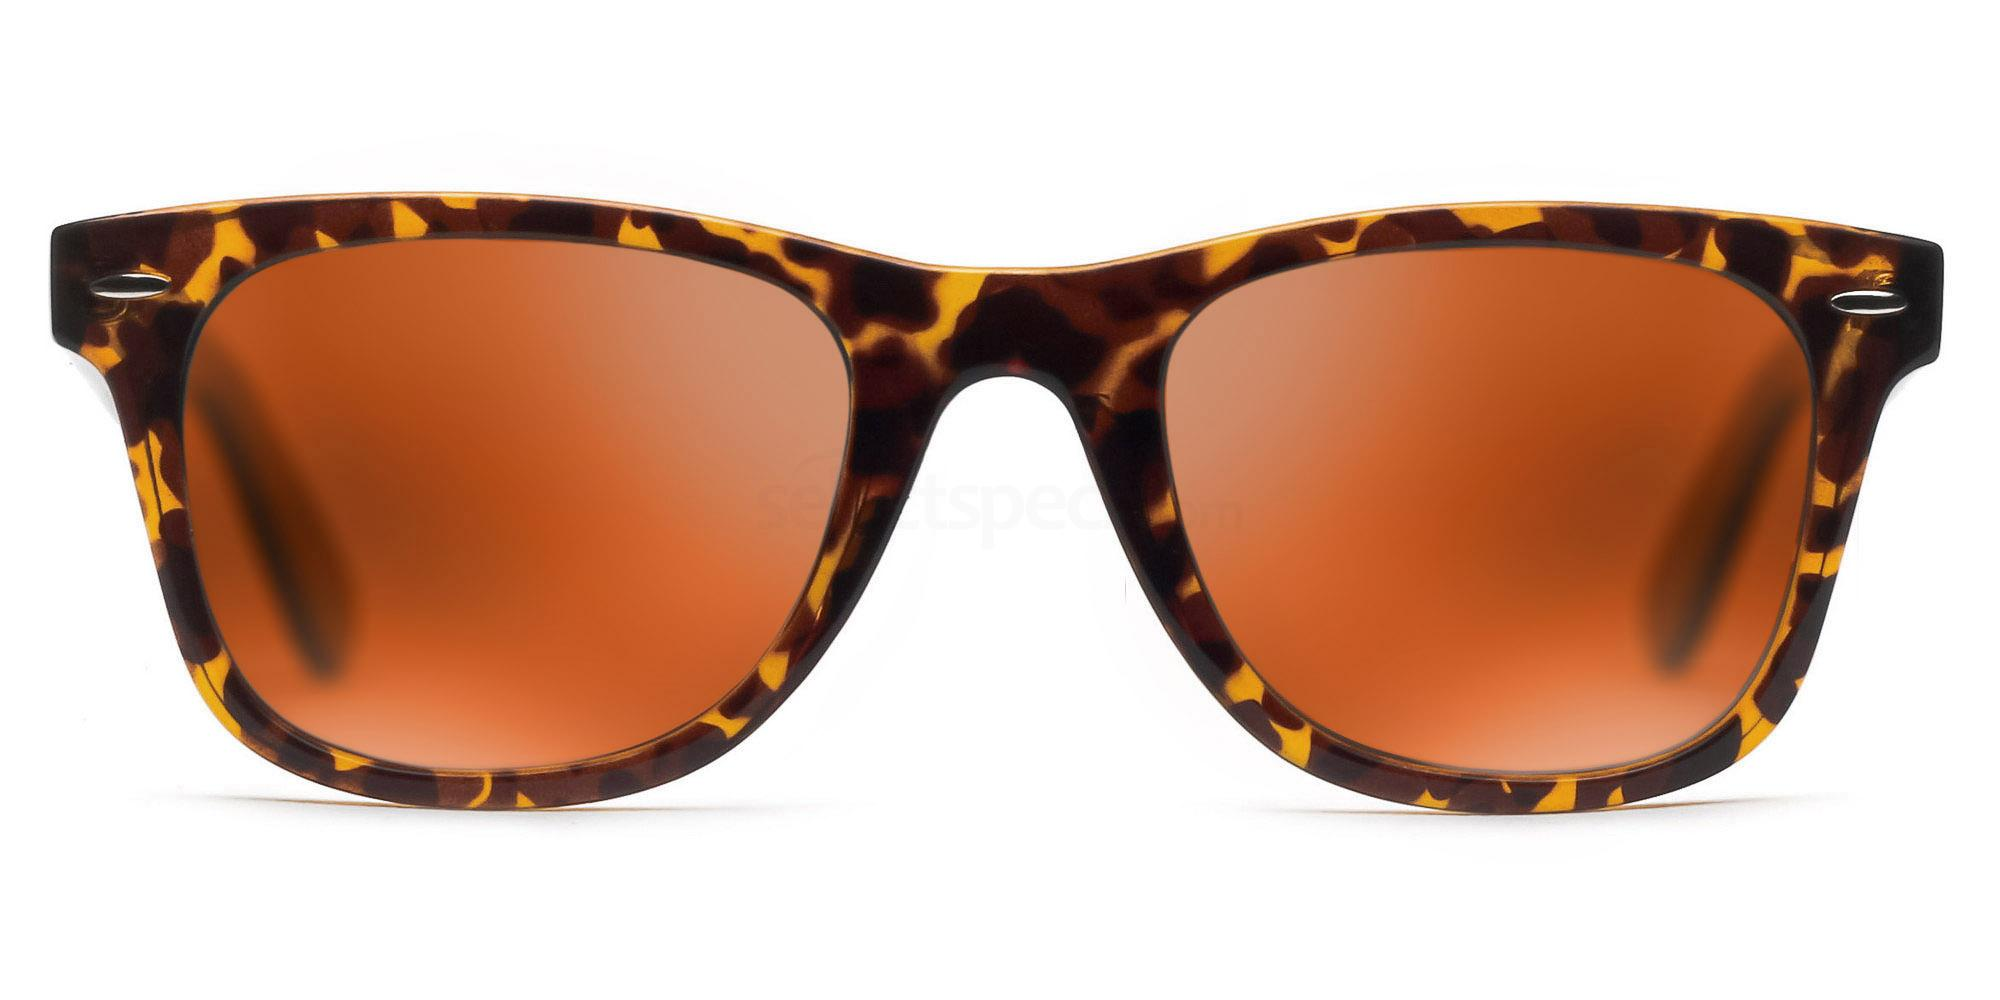 C04 Polarized Grey with Orange Mirror P2429 - Havana (Mirrored Polarized) Sunglasses, Savannah